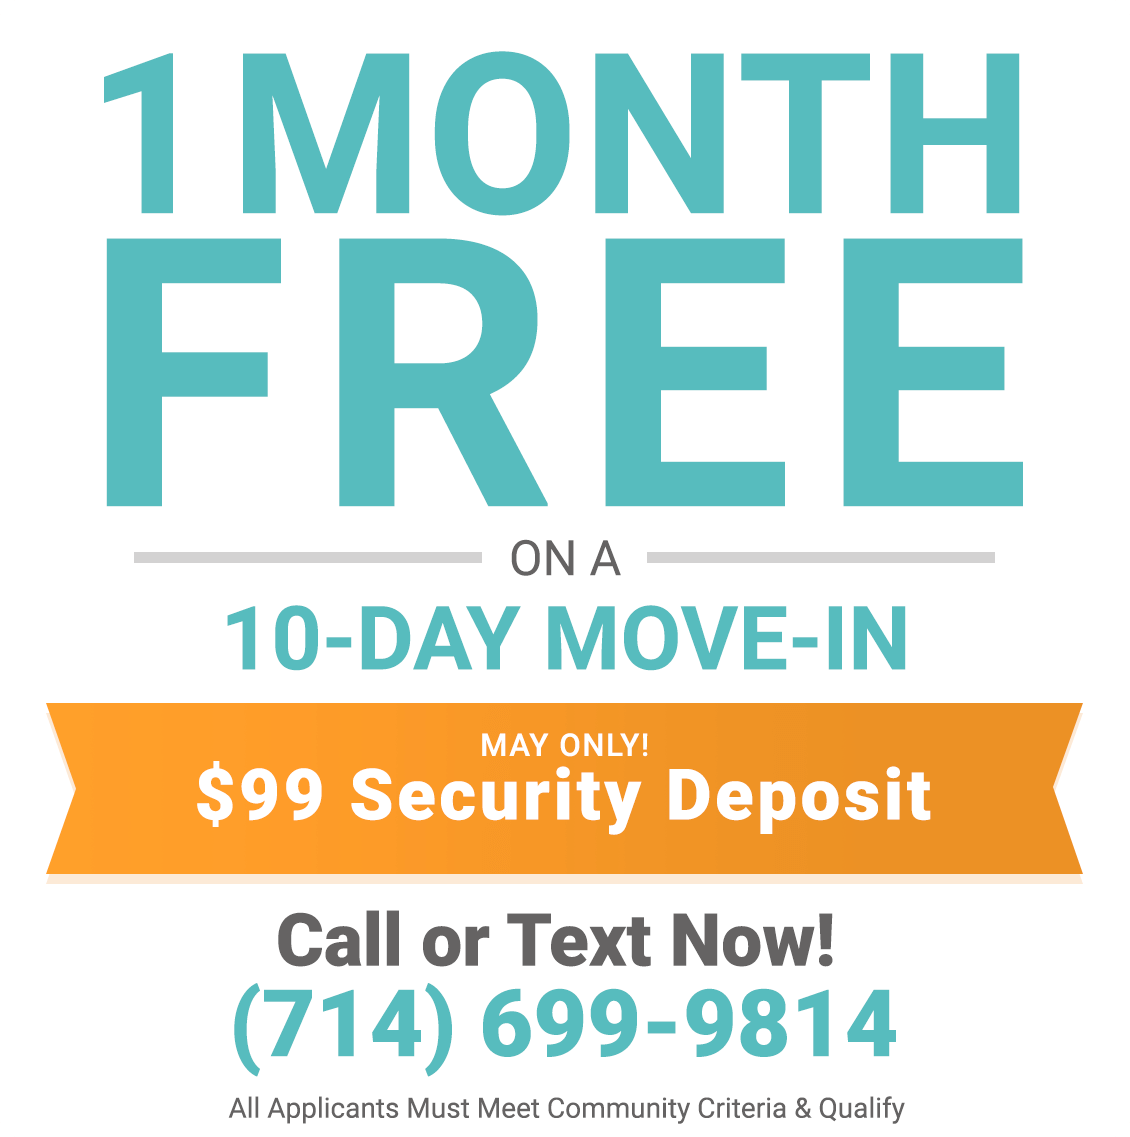 1 month free only during May